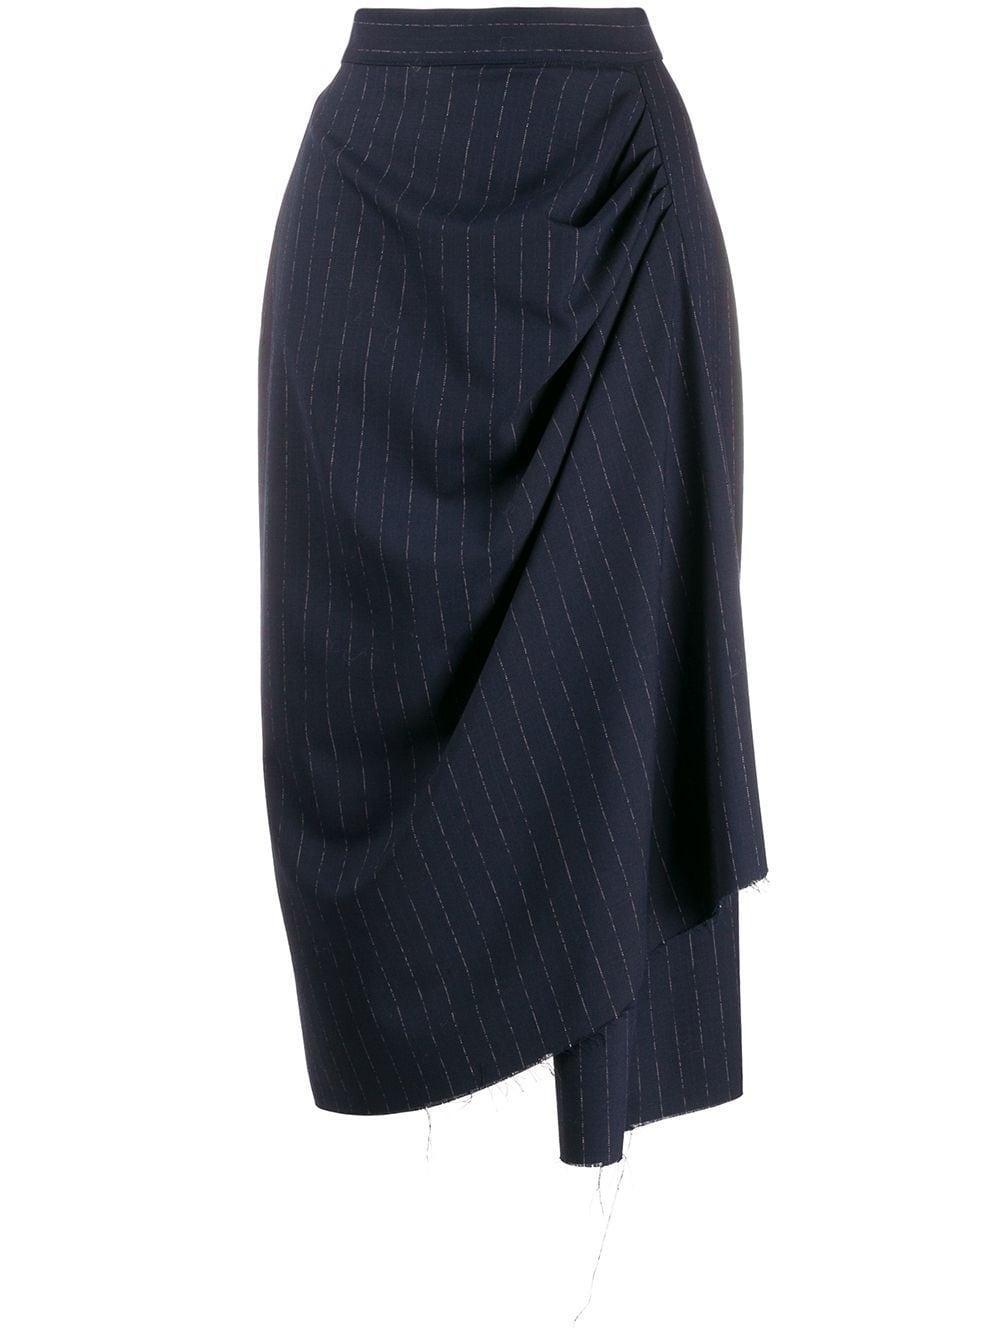 Act N°1 asymmetric pinstriped pencil skirt